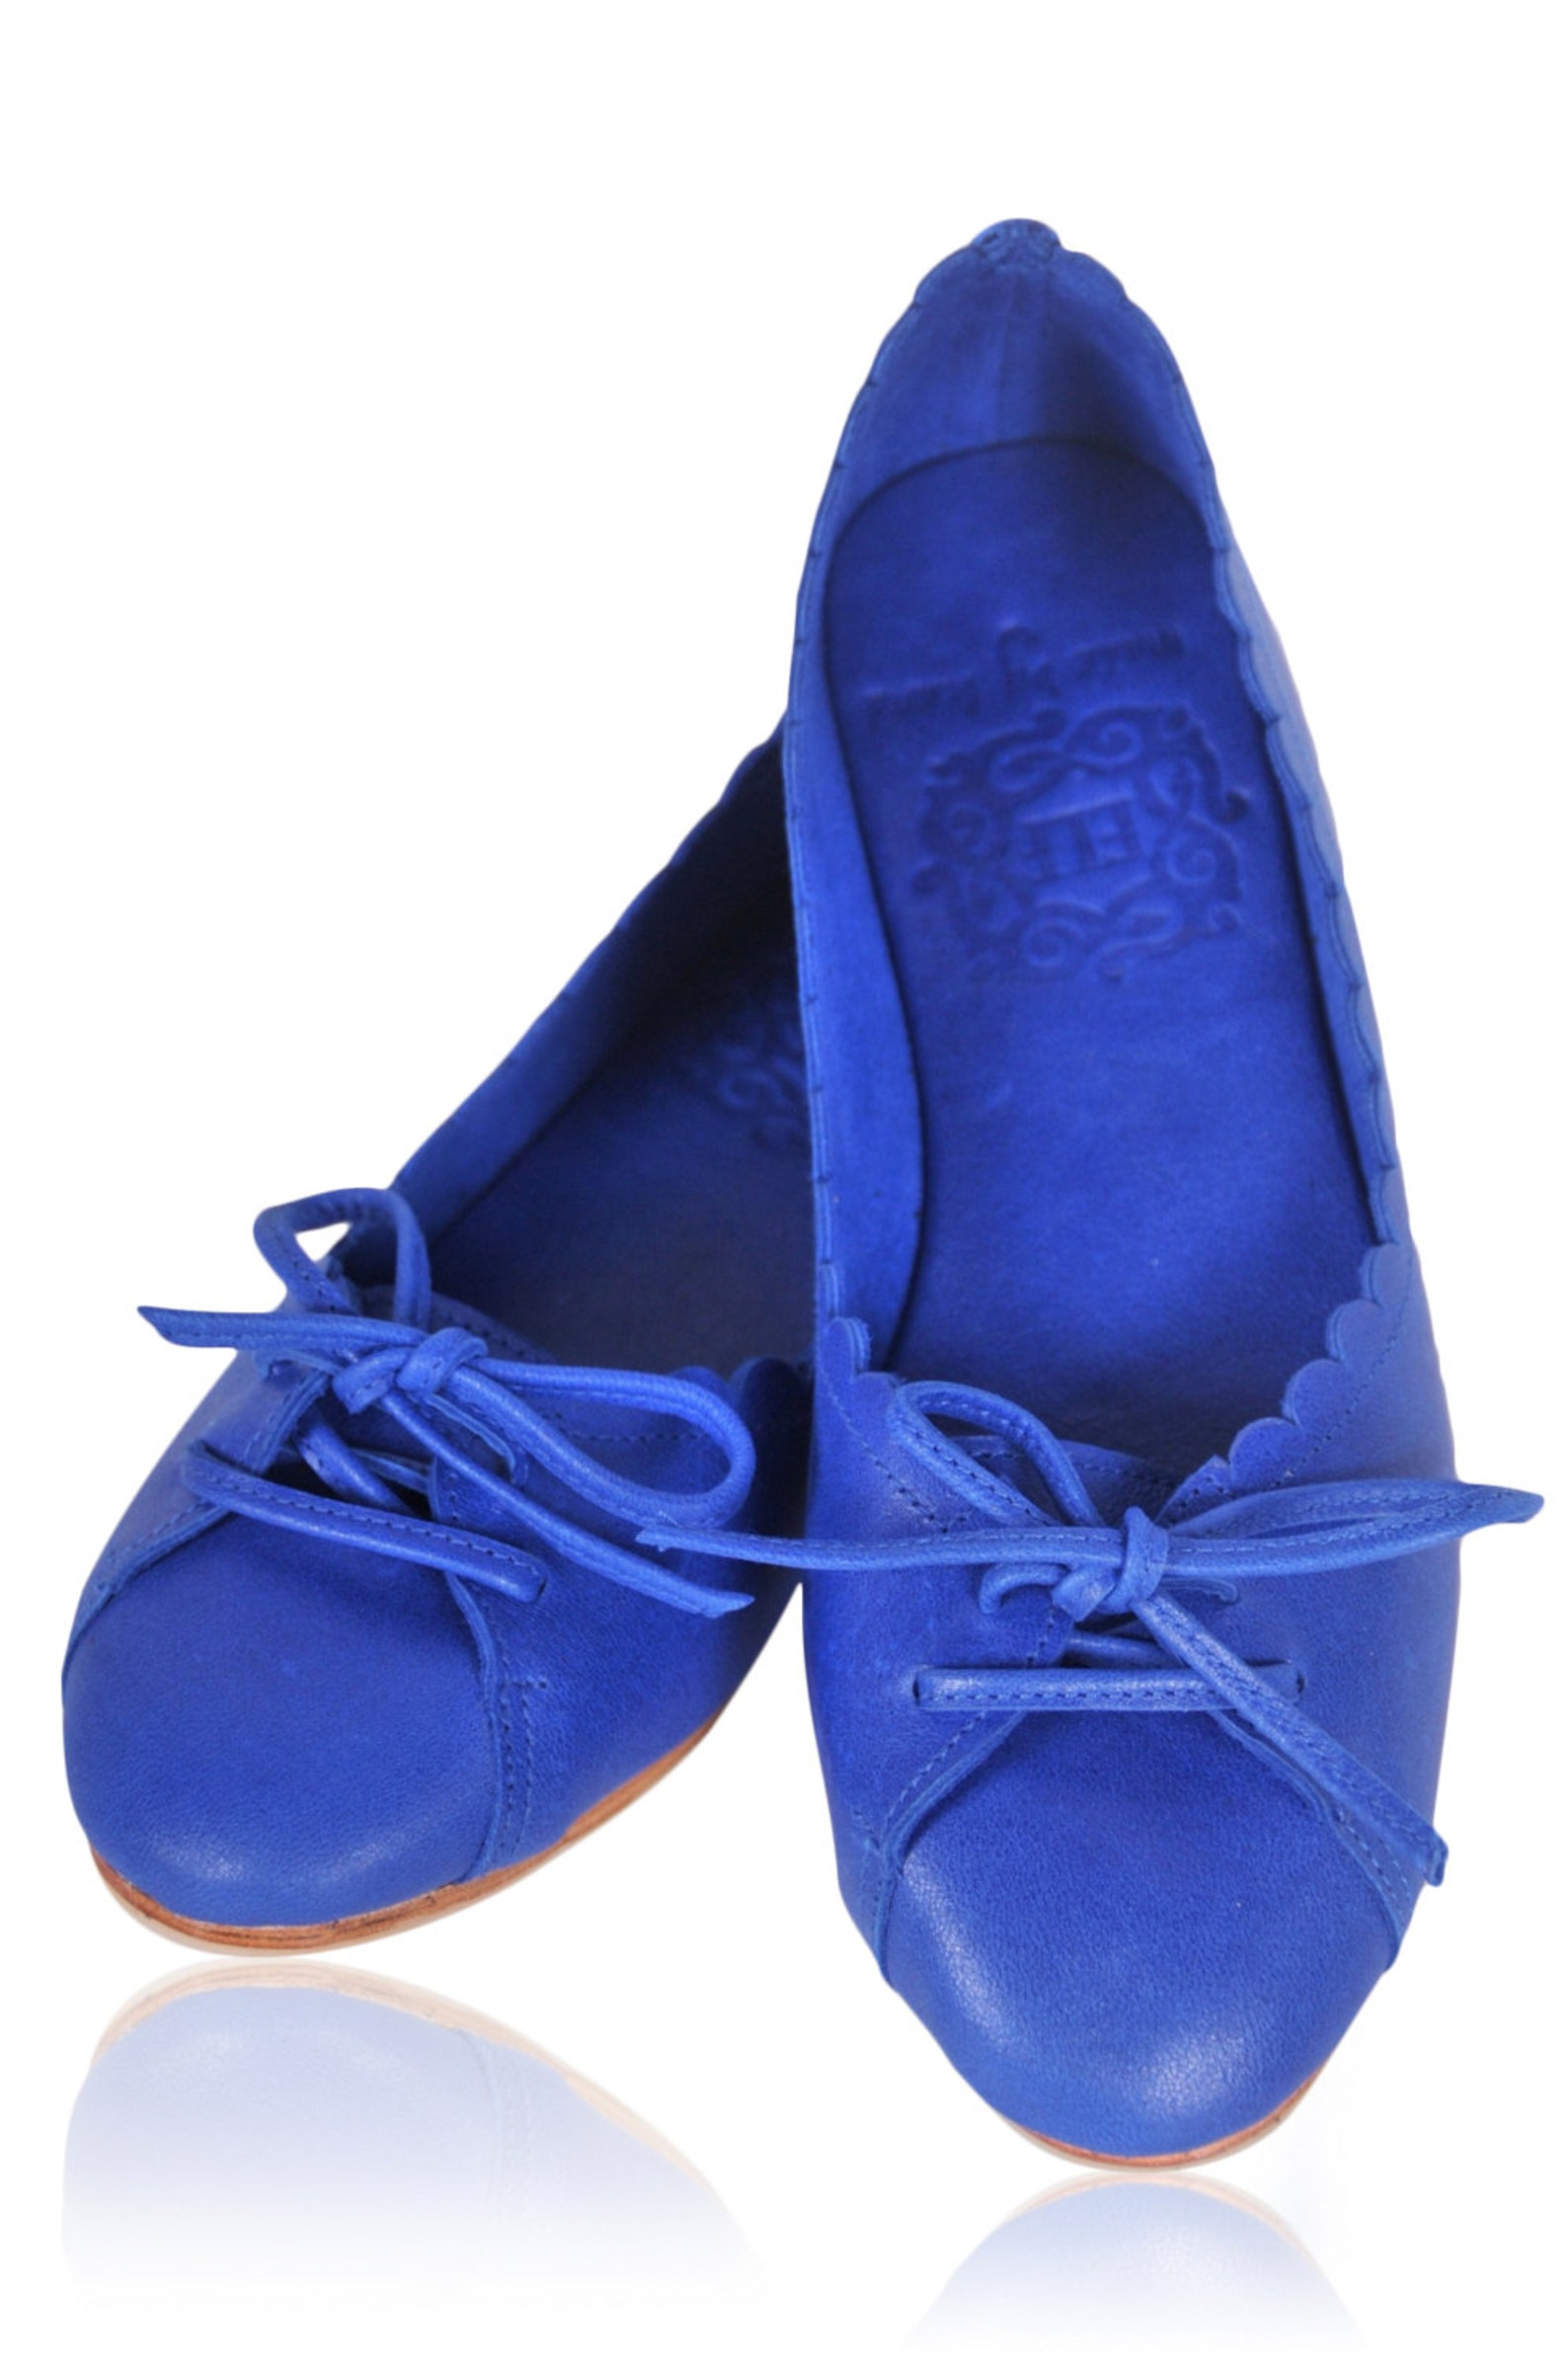 endless love. blue shoes / womens shoes / leather ballet flats / pointy flats / royal blue leather. available in different leath